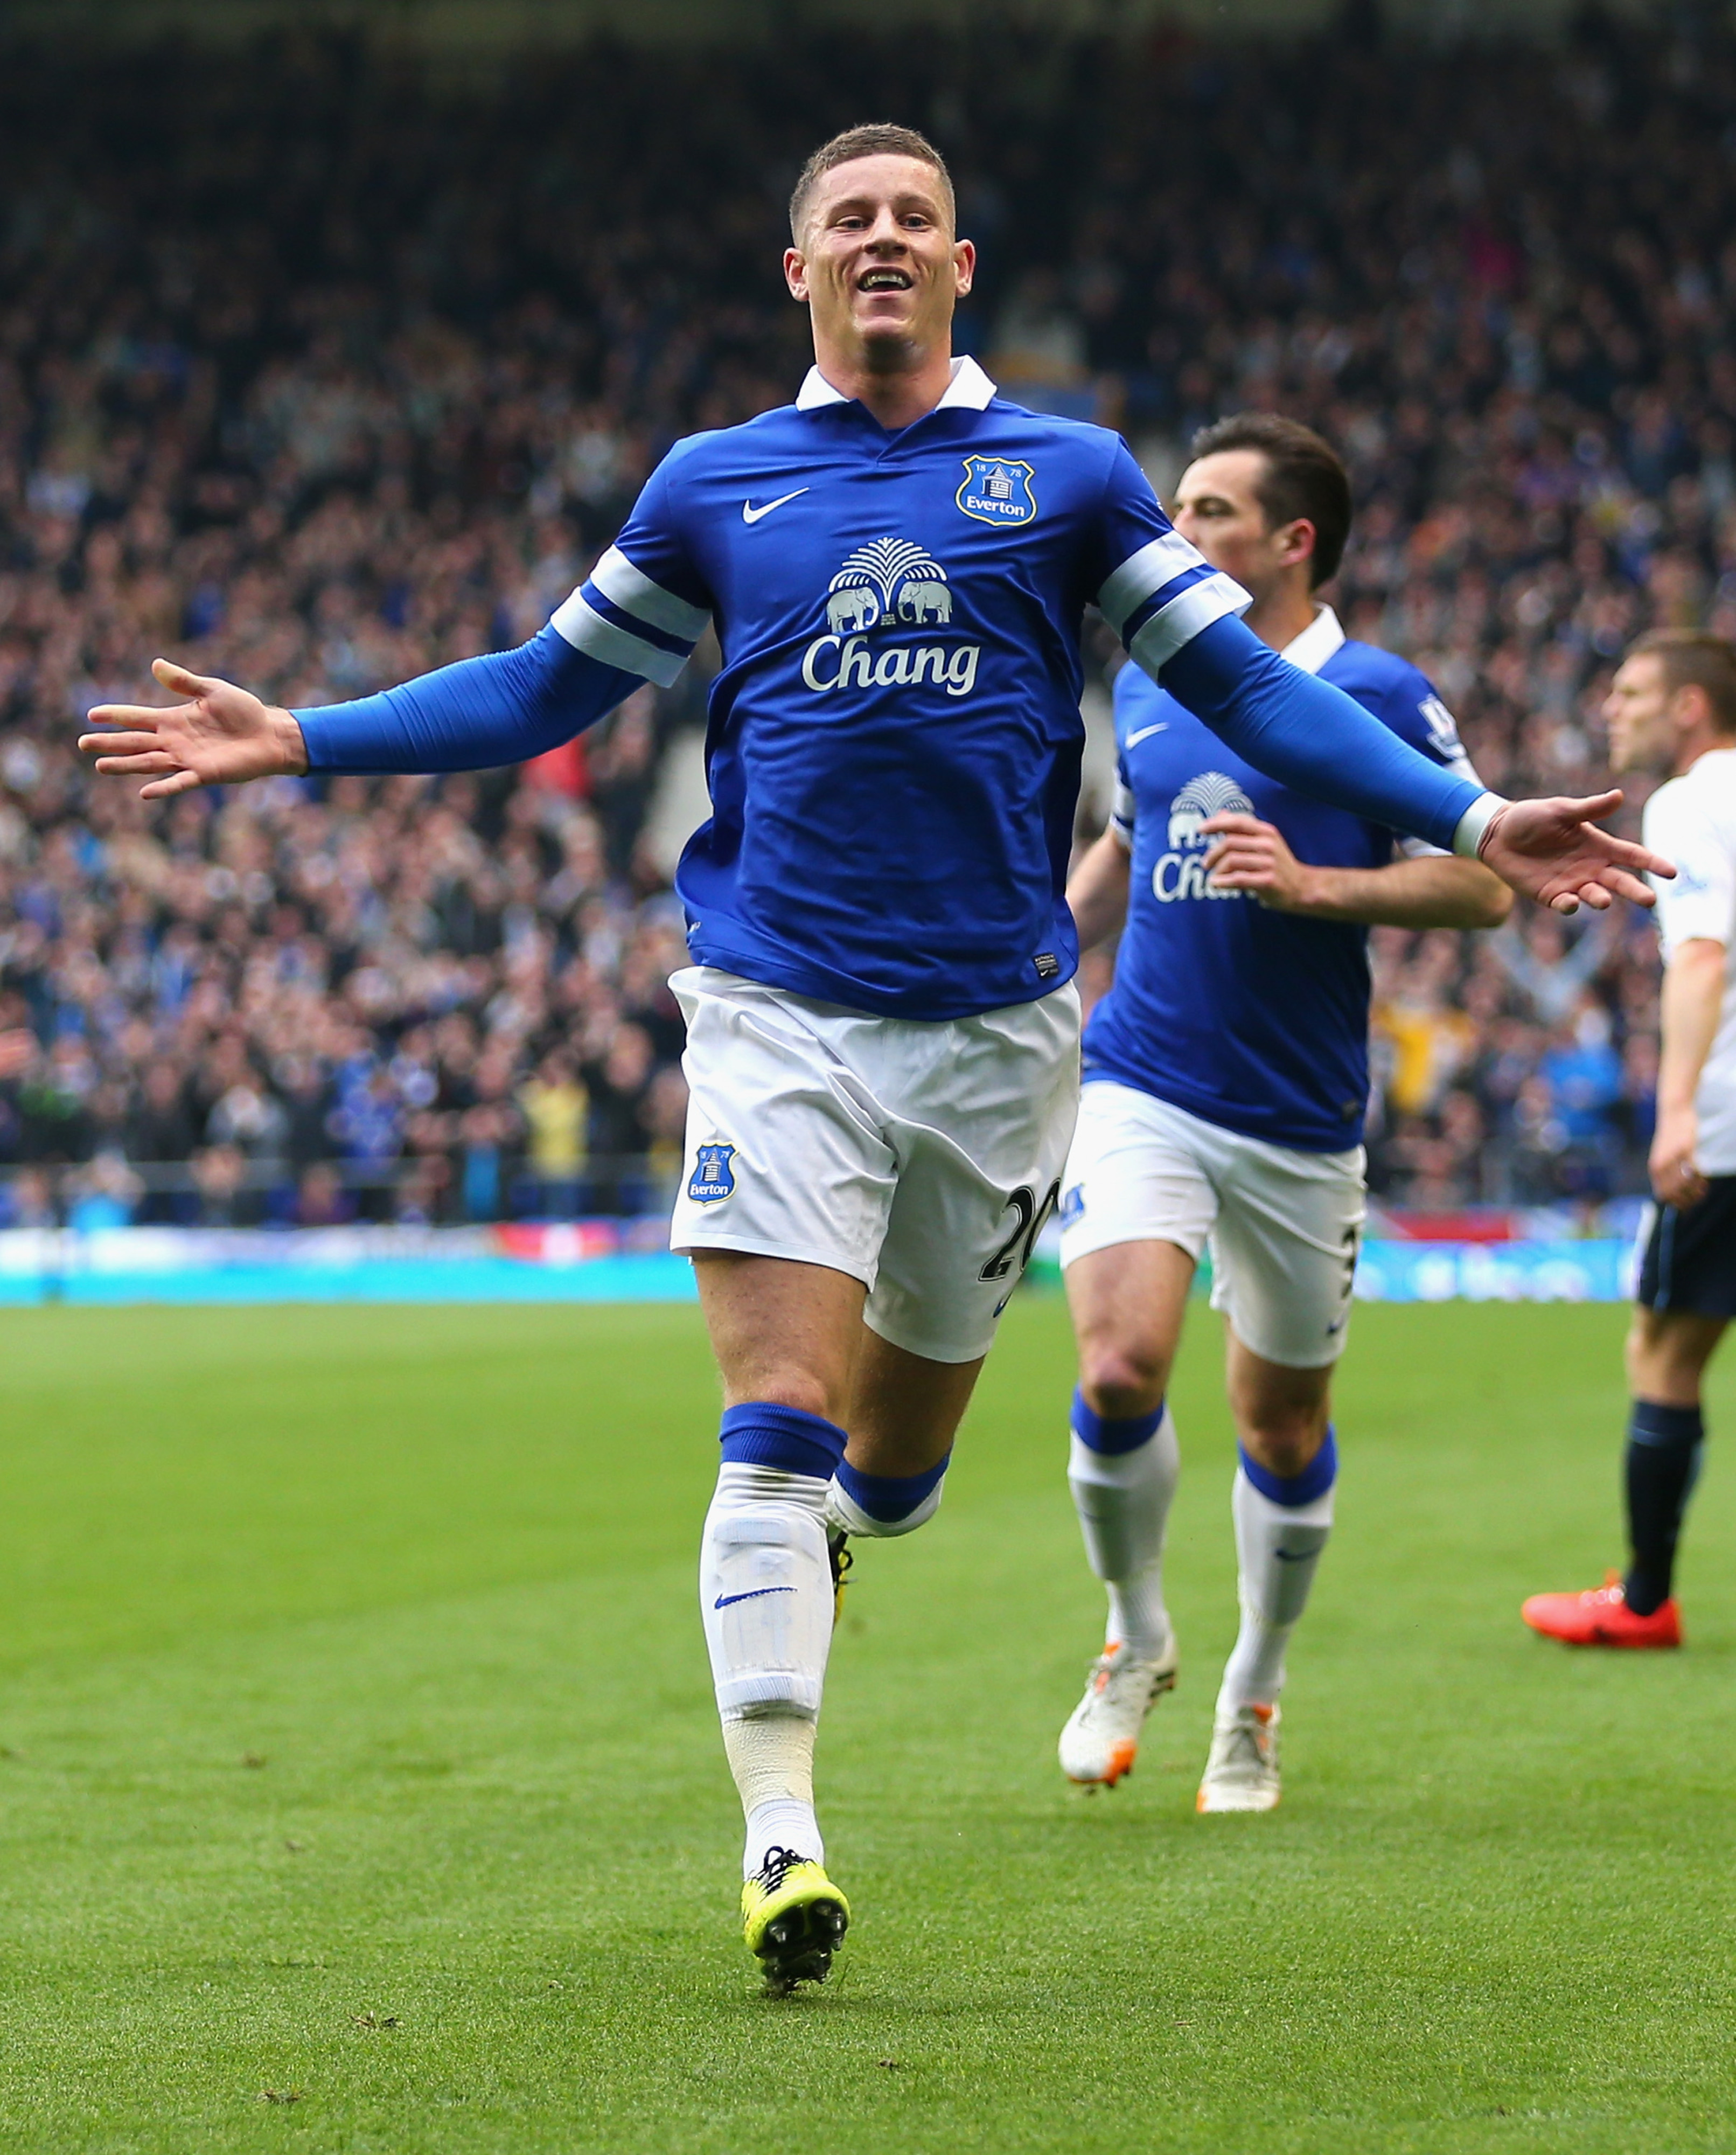 The latter of some thrilling goals from Ross Barkley